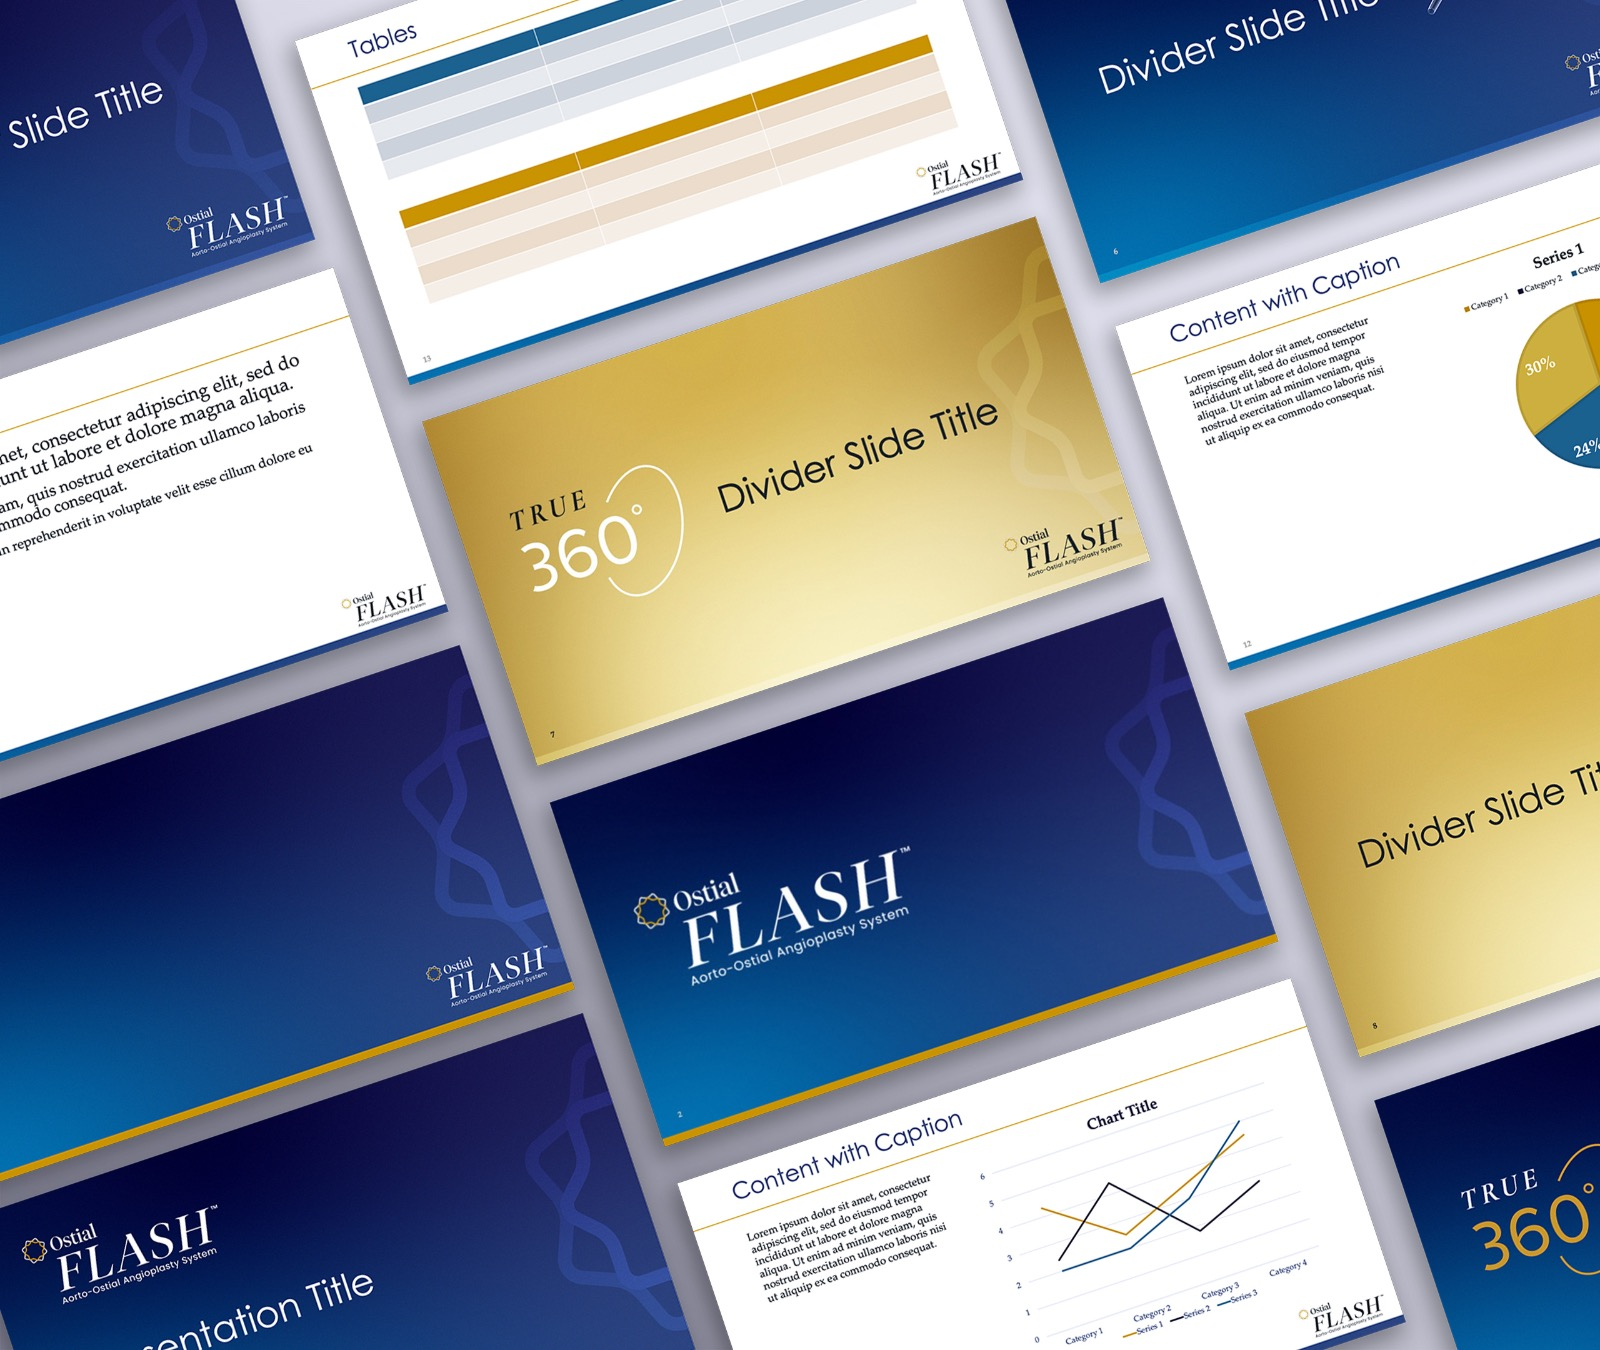 Ostial Medical Power Point Design